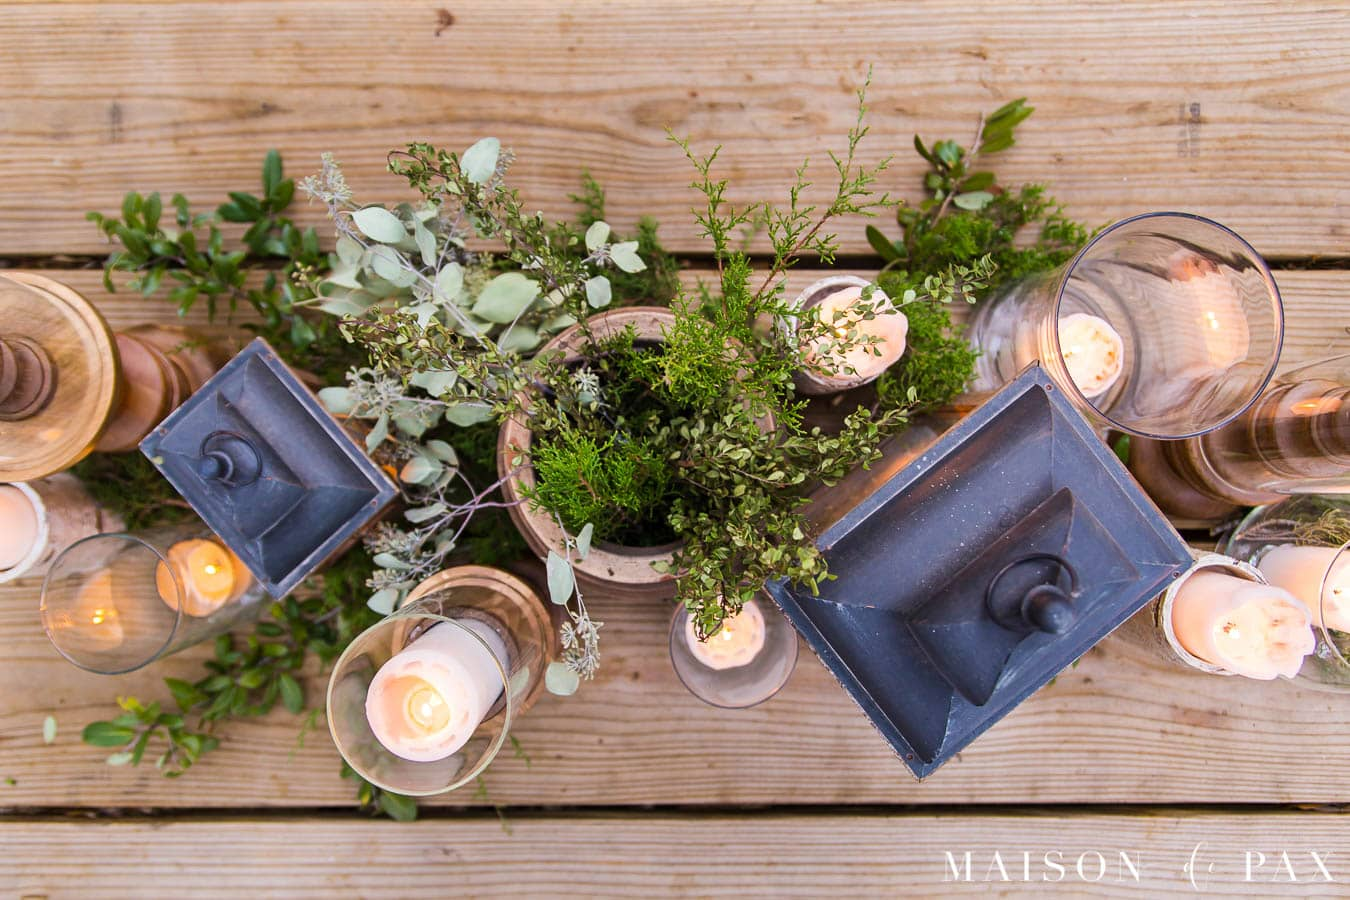 rustic dining table with centerpiece of wooden candlesticks, lanterns, and glass vases | Maison de Pax